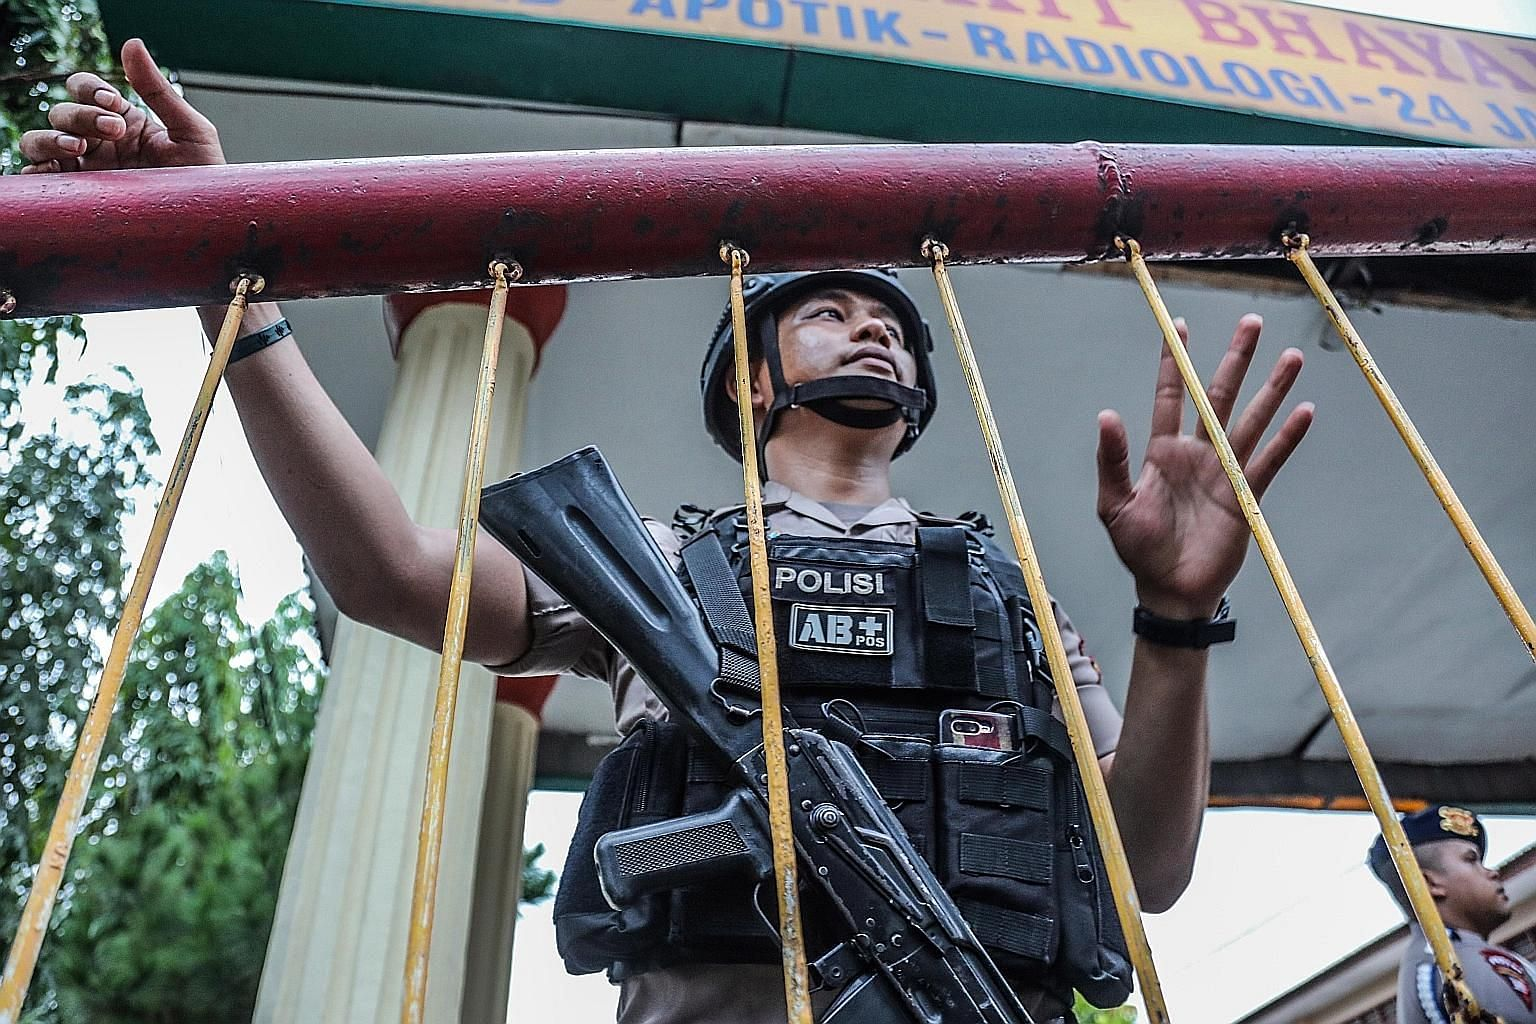 A member of the Indonesian Mobile Brigade Corps guarding the entrance to its headquarters following the killing of the two bomb-makers in a raid last Saturday in Medan, North Sumatra. One police officer was hurt during the raid.